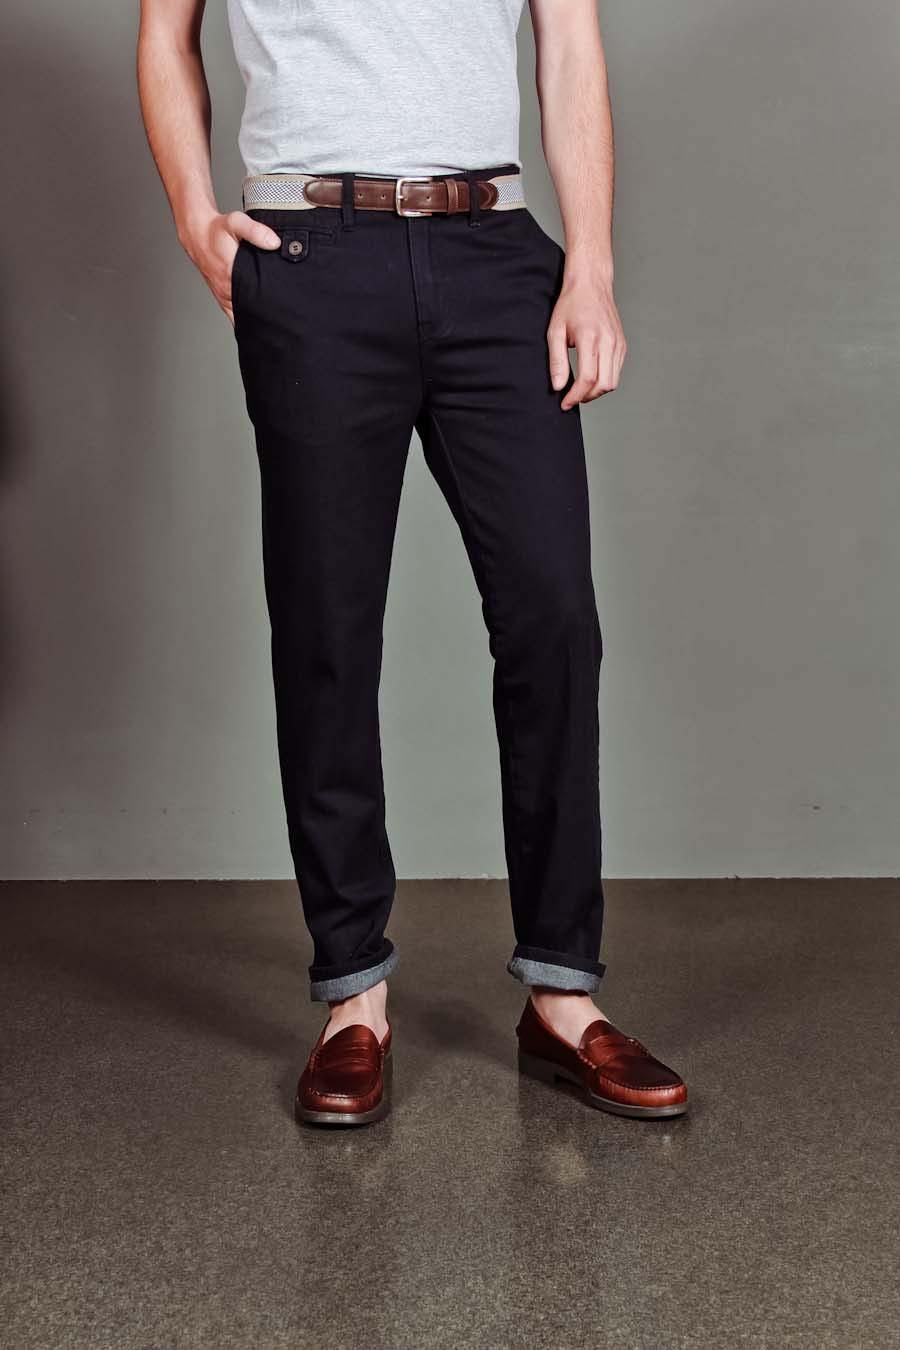 Goodale Tailored Chino Pants